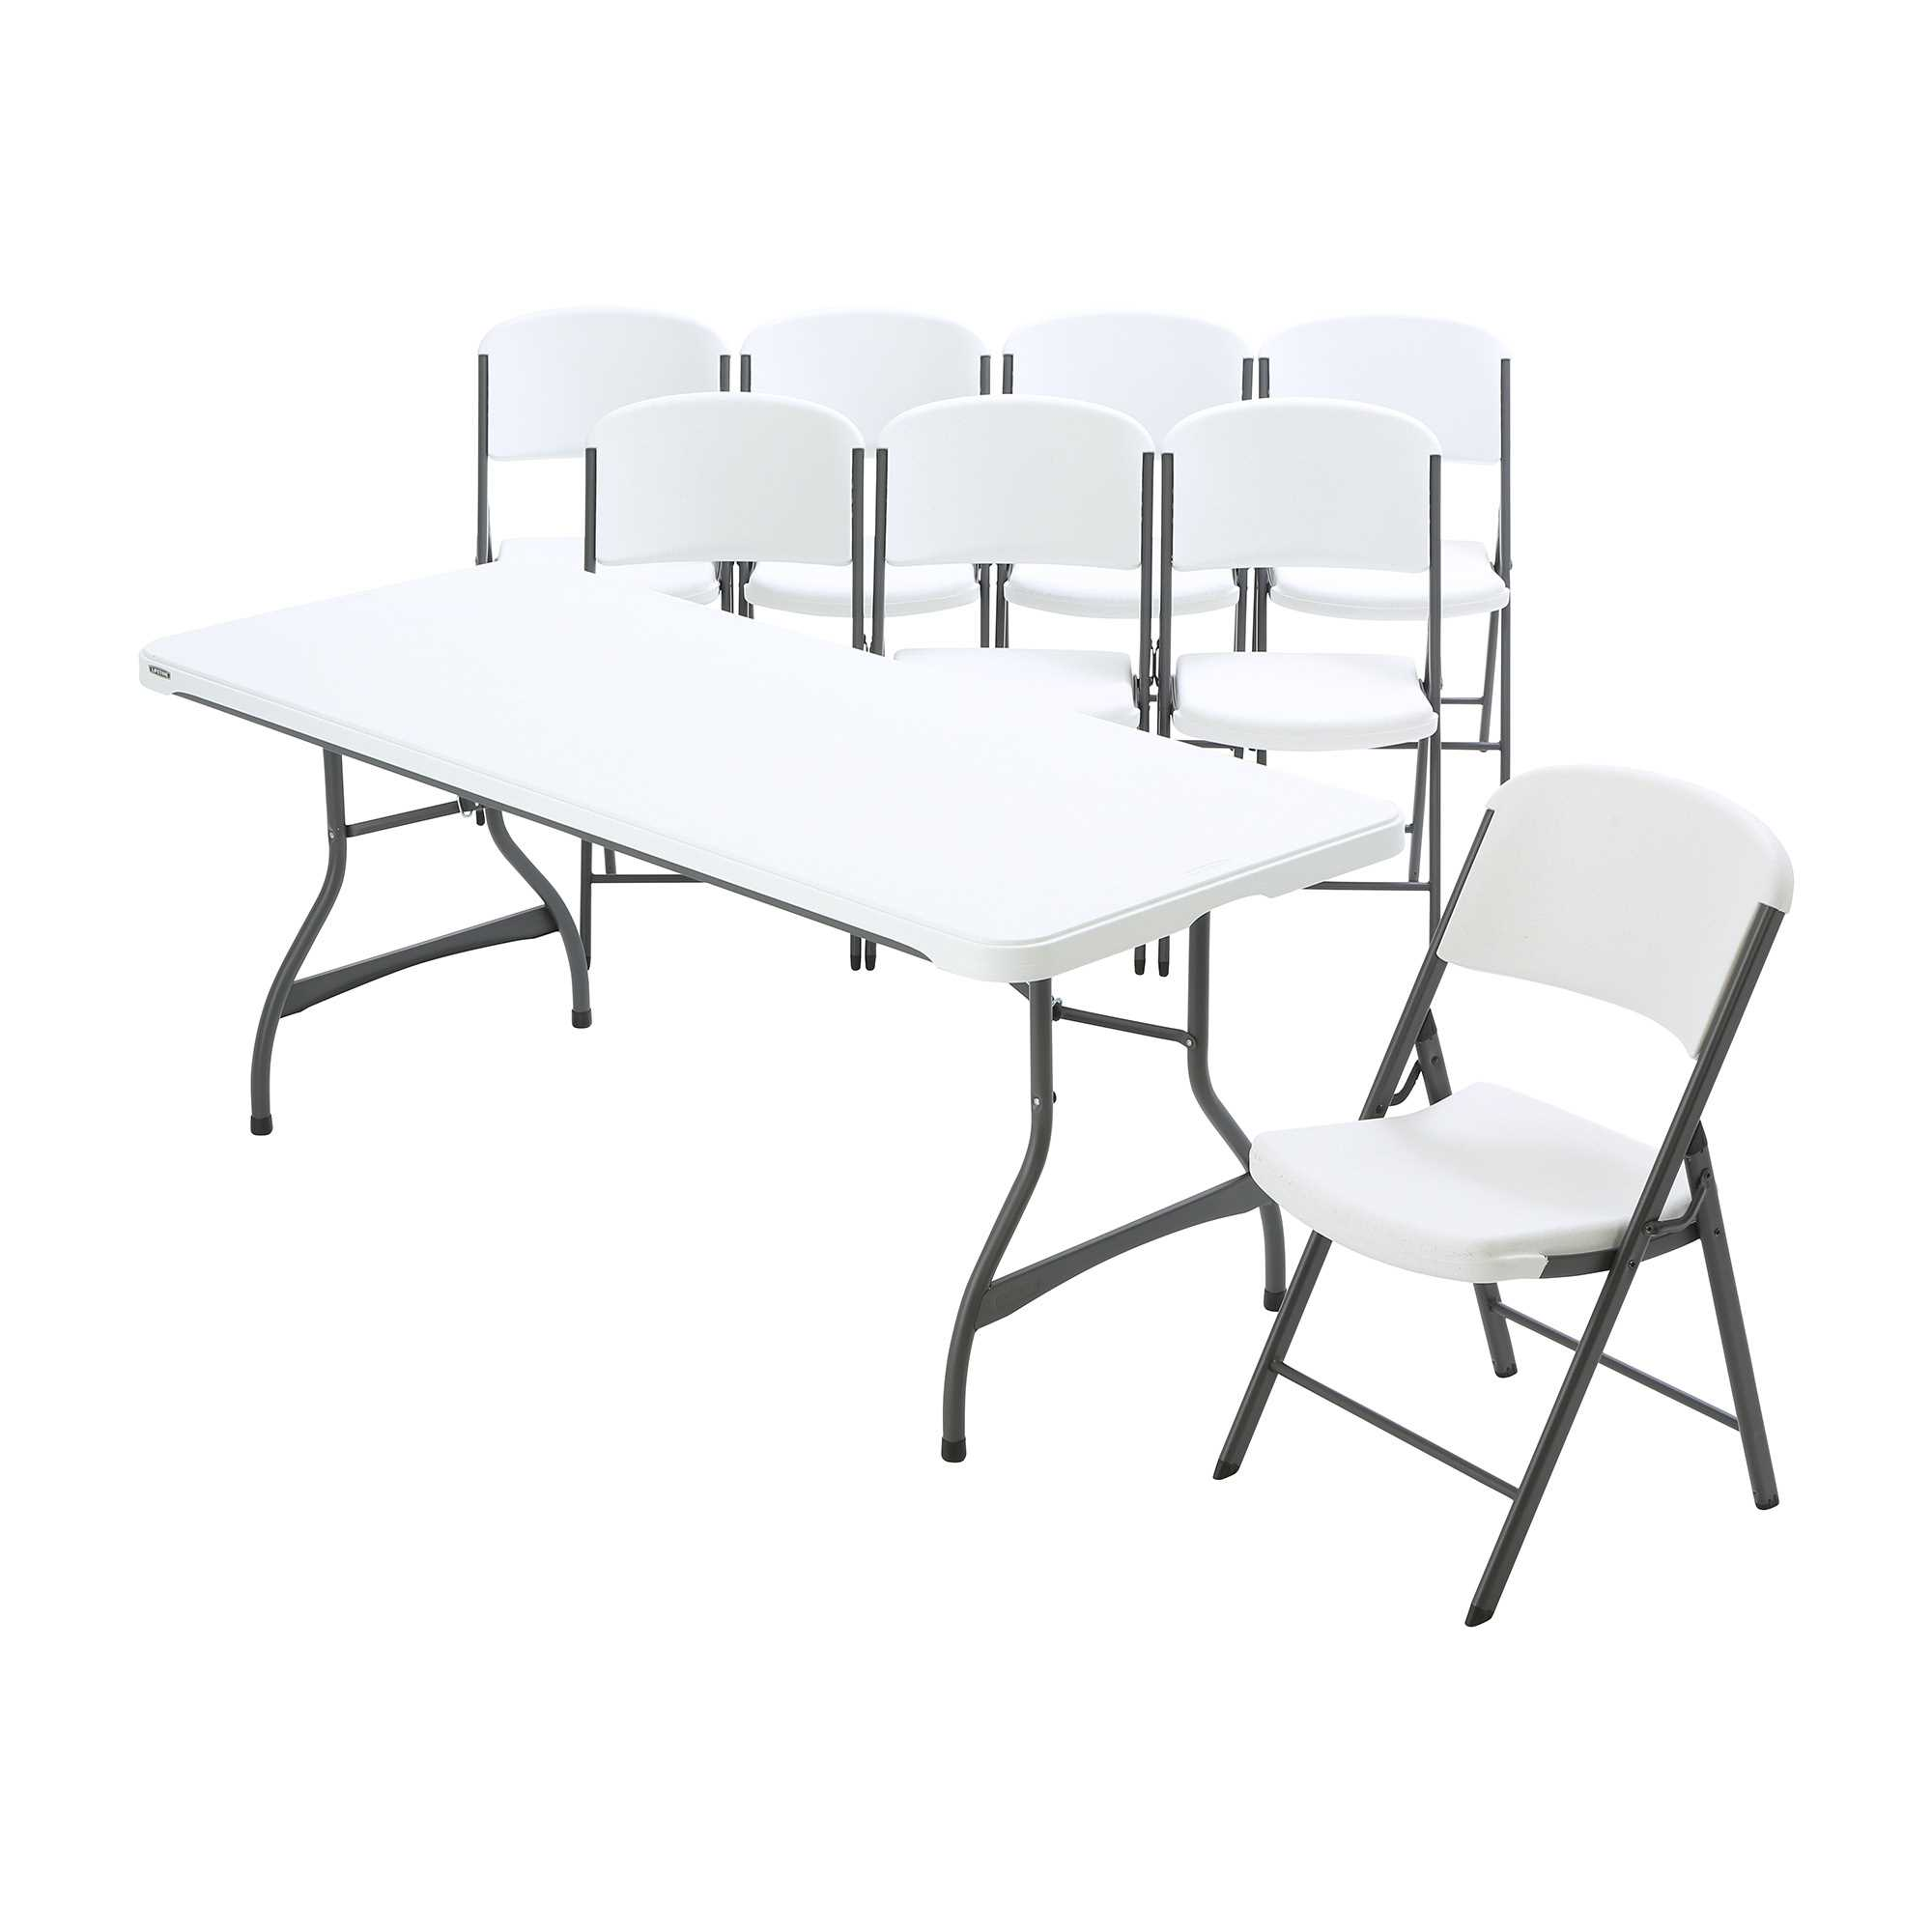 Lifetime 6-Foot Stacking Table and (8) Chairs Combo (Commercial)